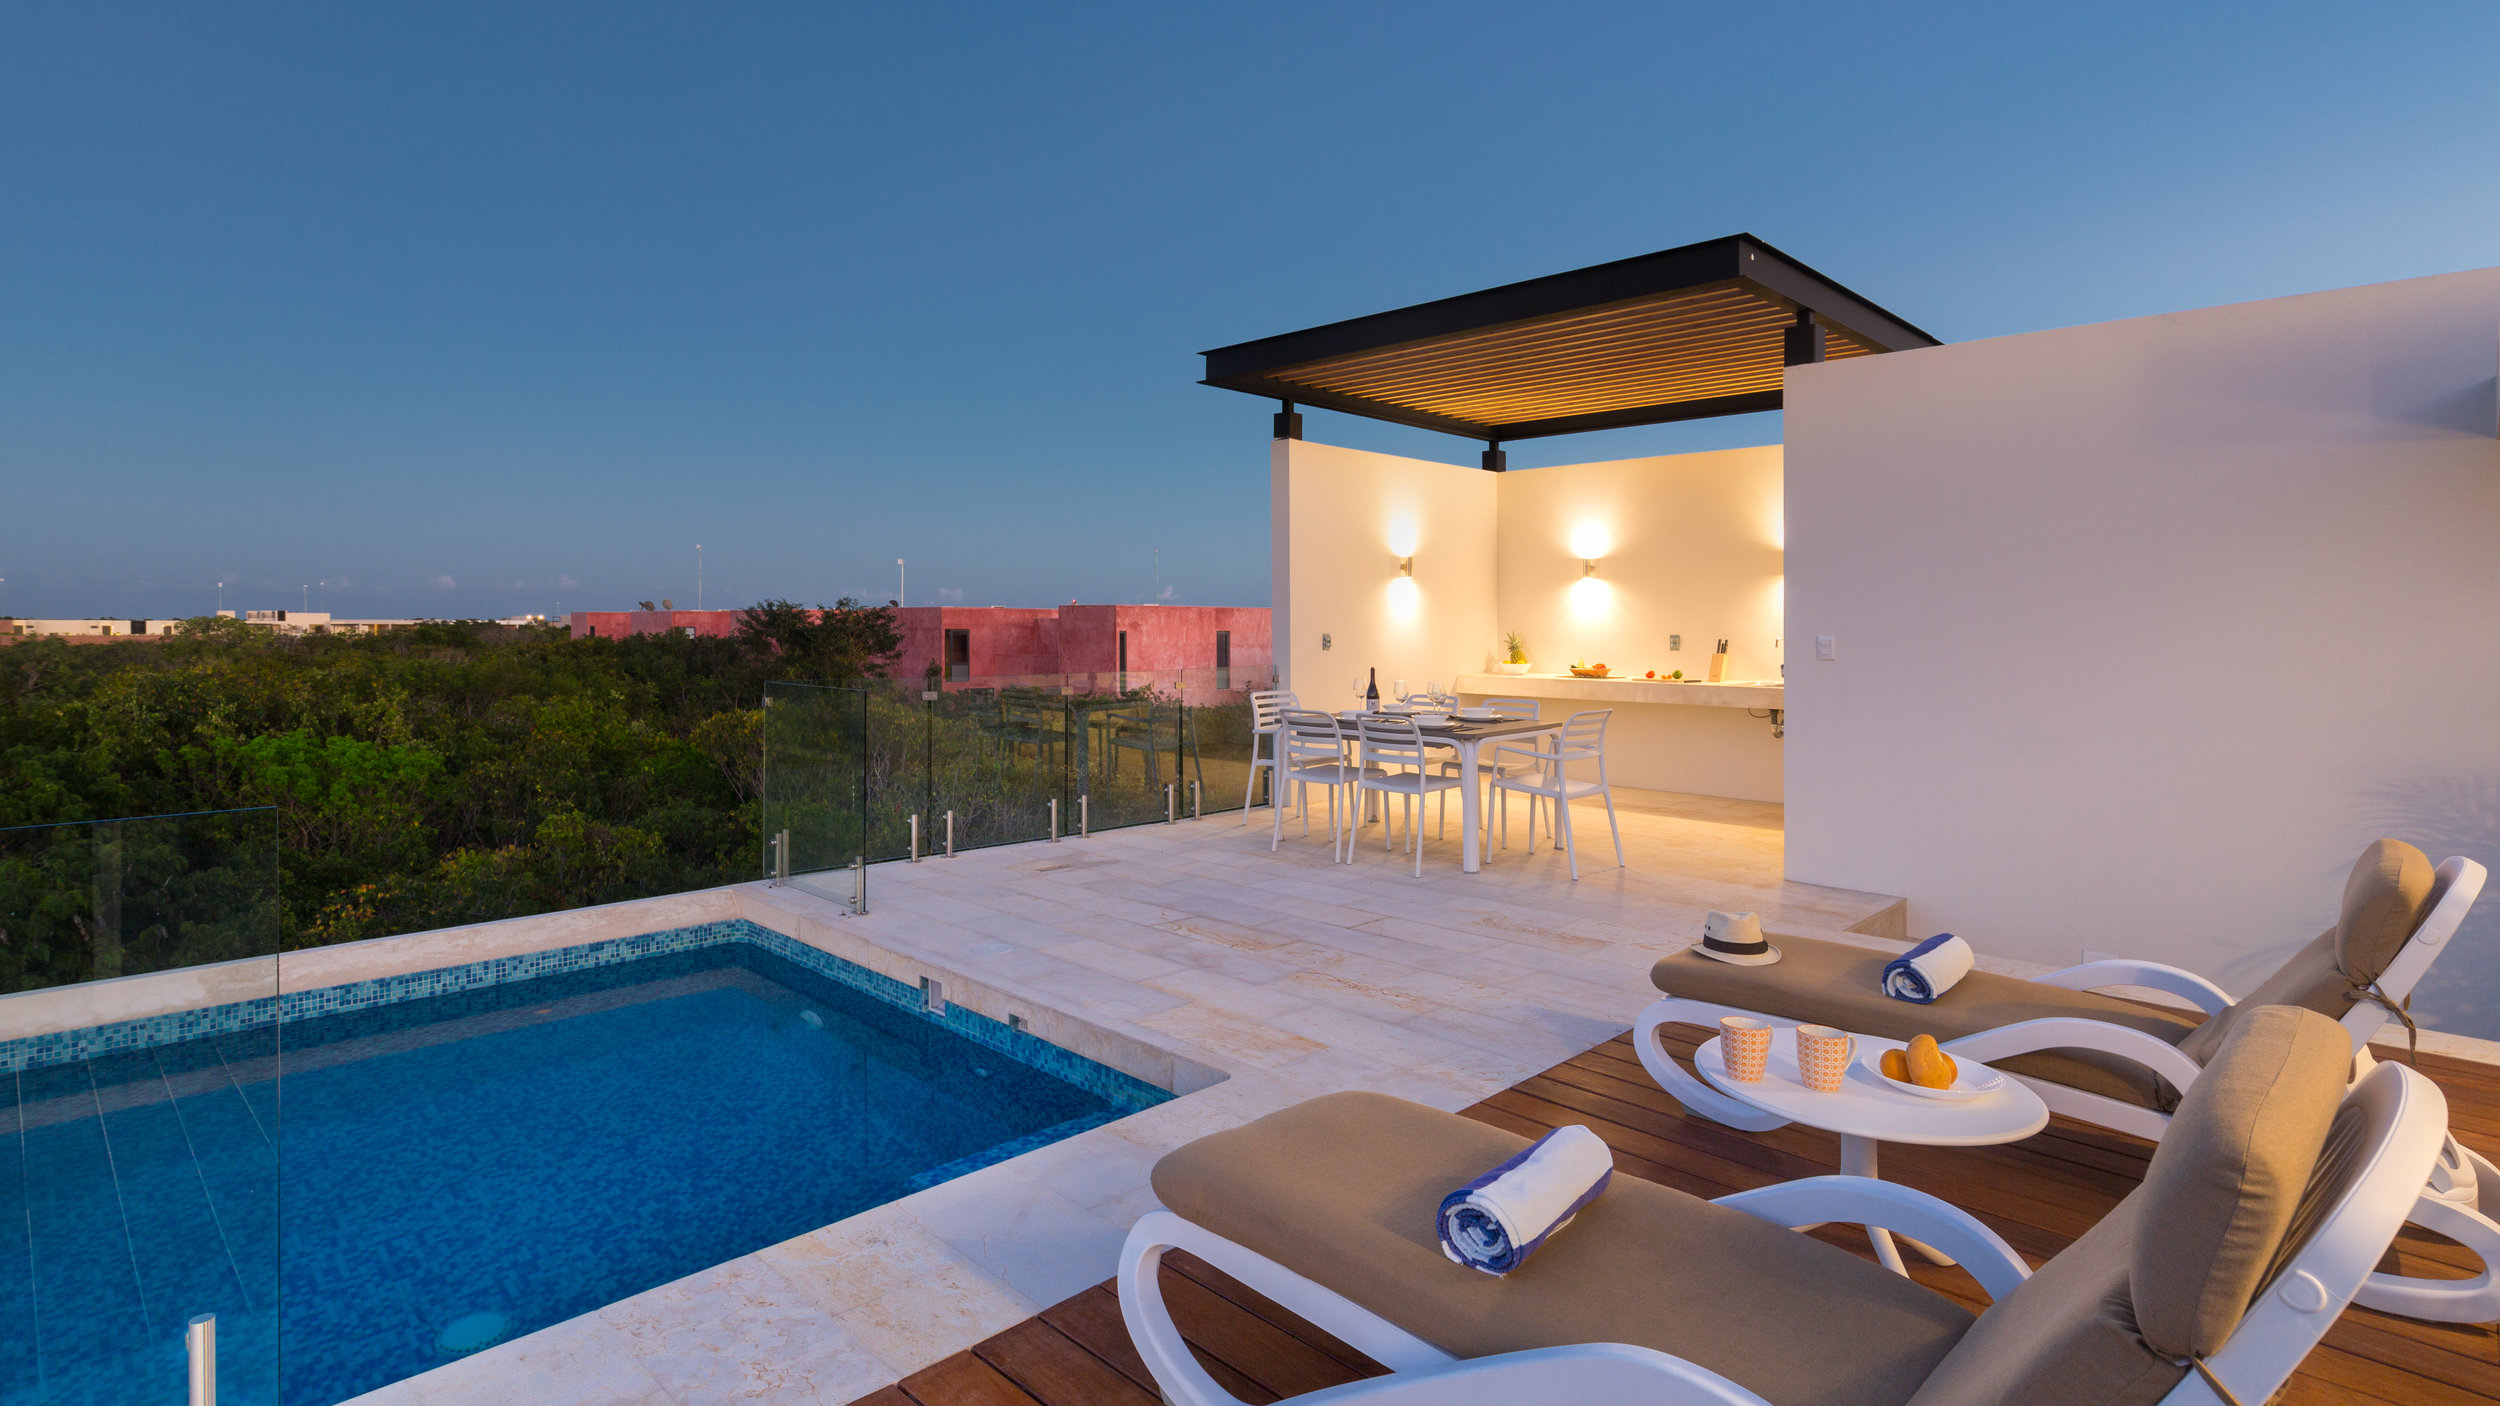 A studio with a king bed, private terrace, bathroom, fully-equipped kitchen, common roof with infinity pool and exclusive access to private roof with dipping pool.